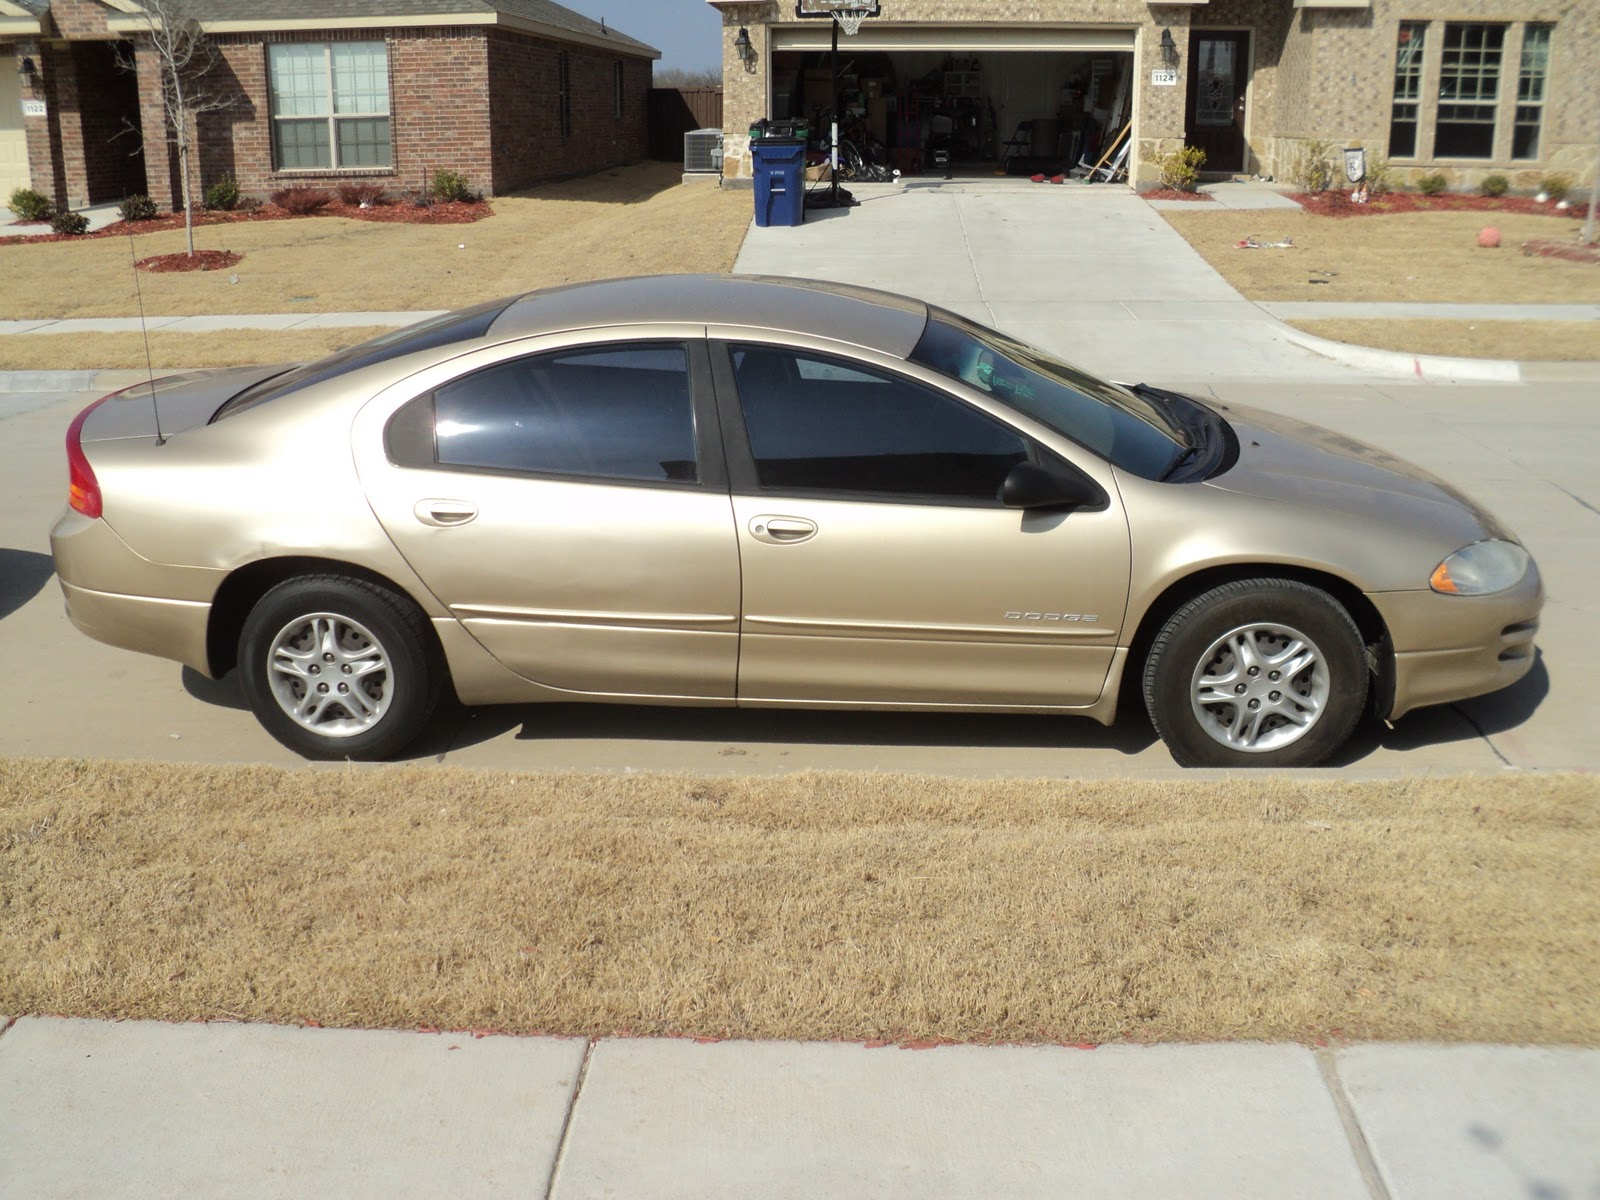 medium resolution of 1999 dodge intrepid gold exterior tan gold cloth interior 97 xxx original miles good solid car for under 4000 asking 3995